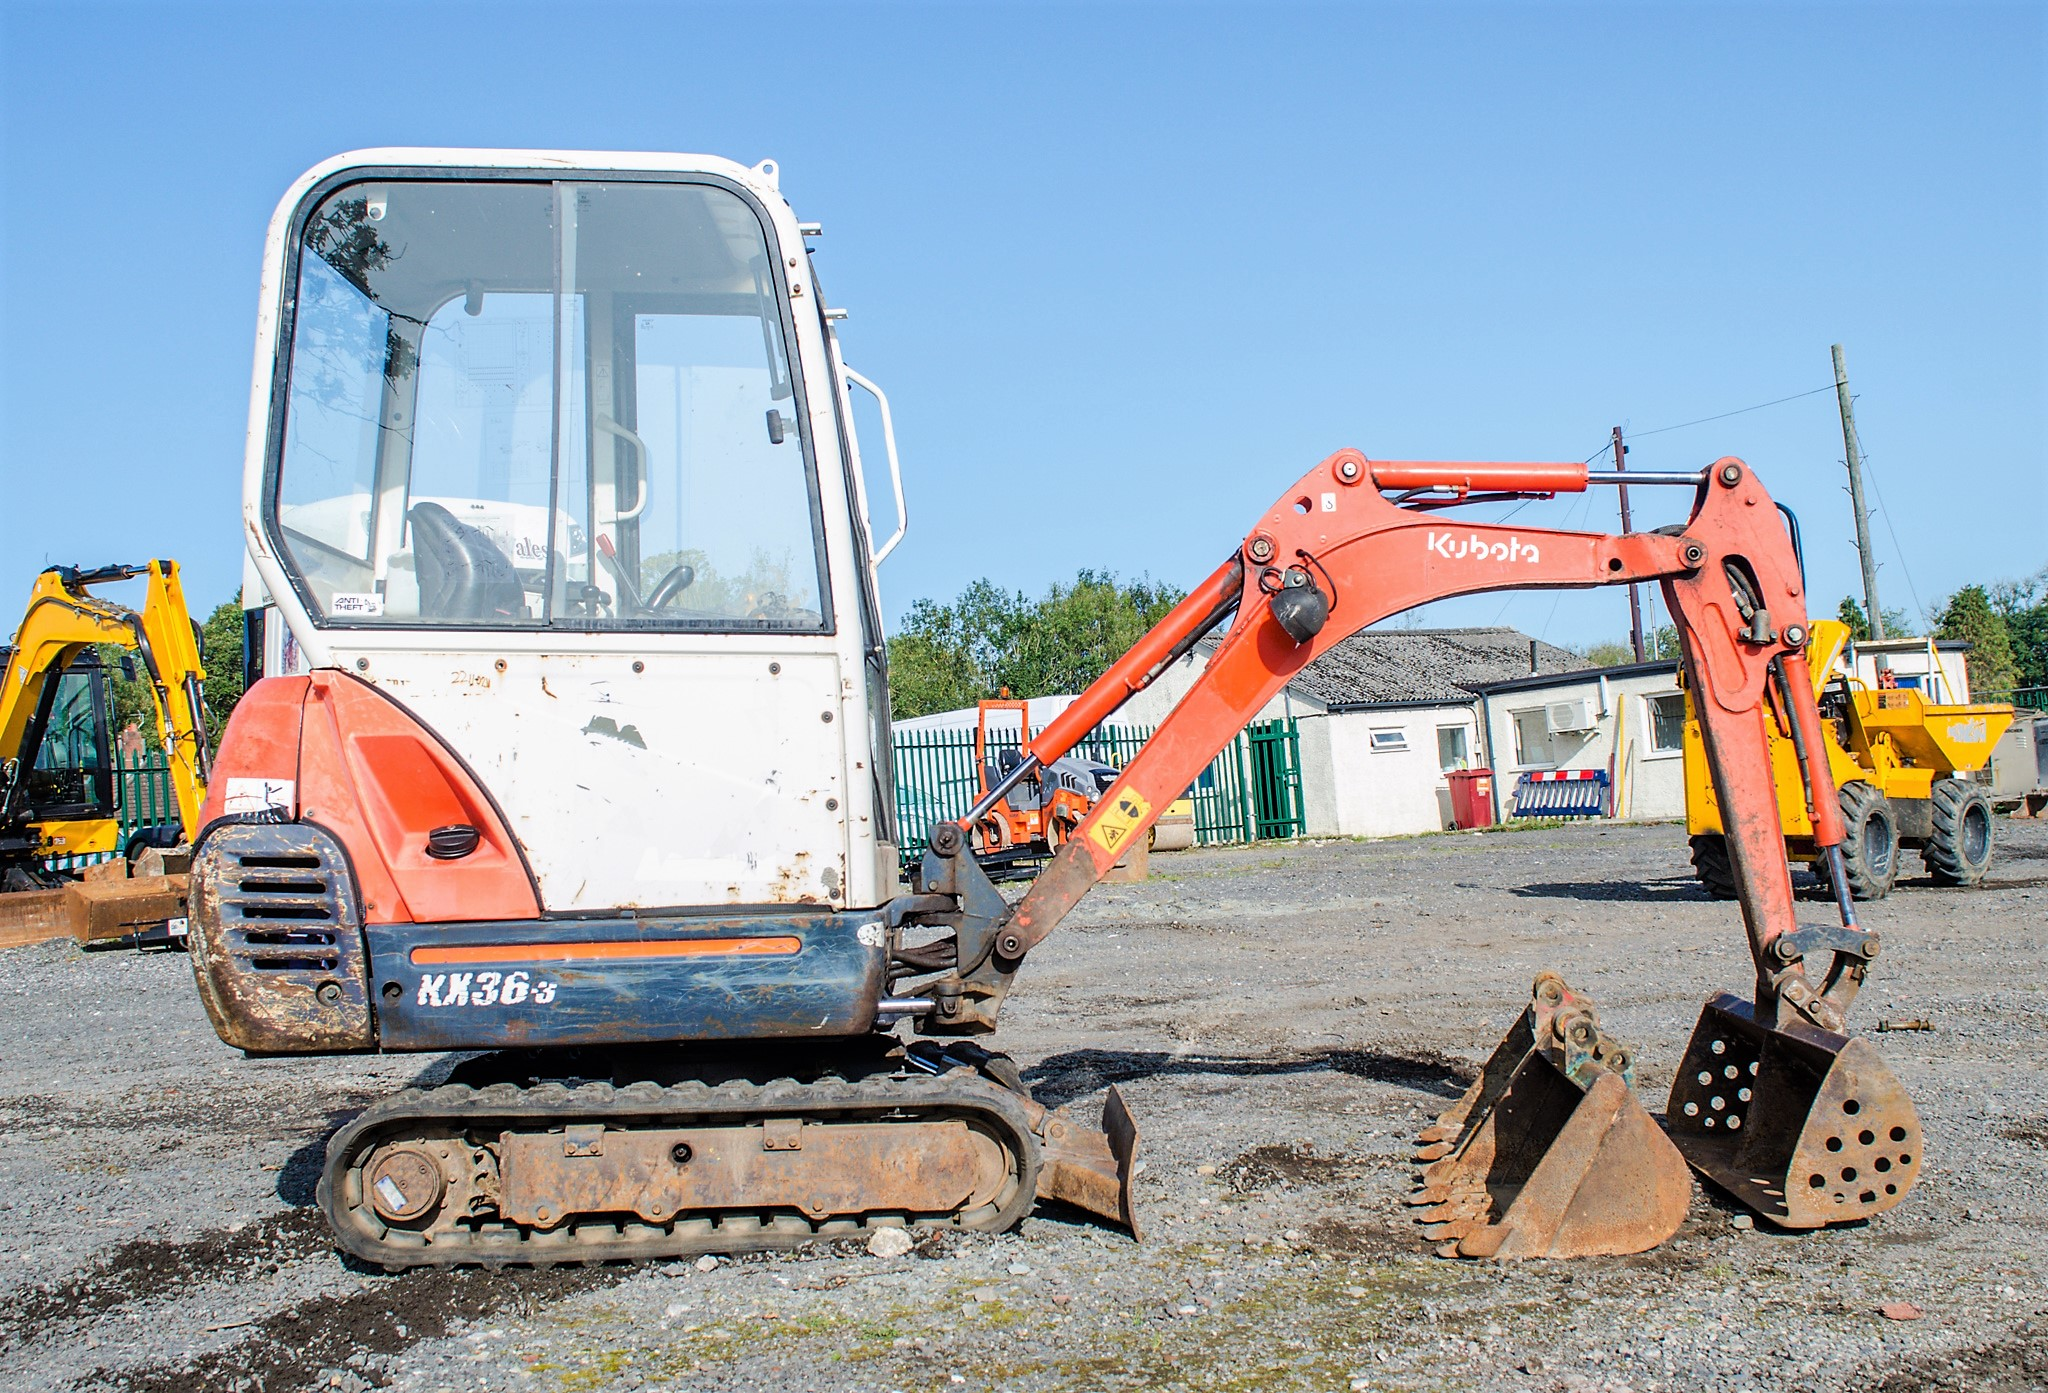 Kubota KX36-3 1.5 tonne rubber tracked mini excavator Year: 2007 S/N: Z077298 Recorded Hours: 4205 - Image 8 of 18